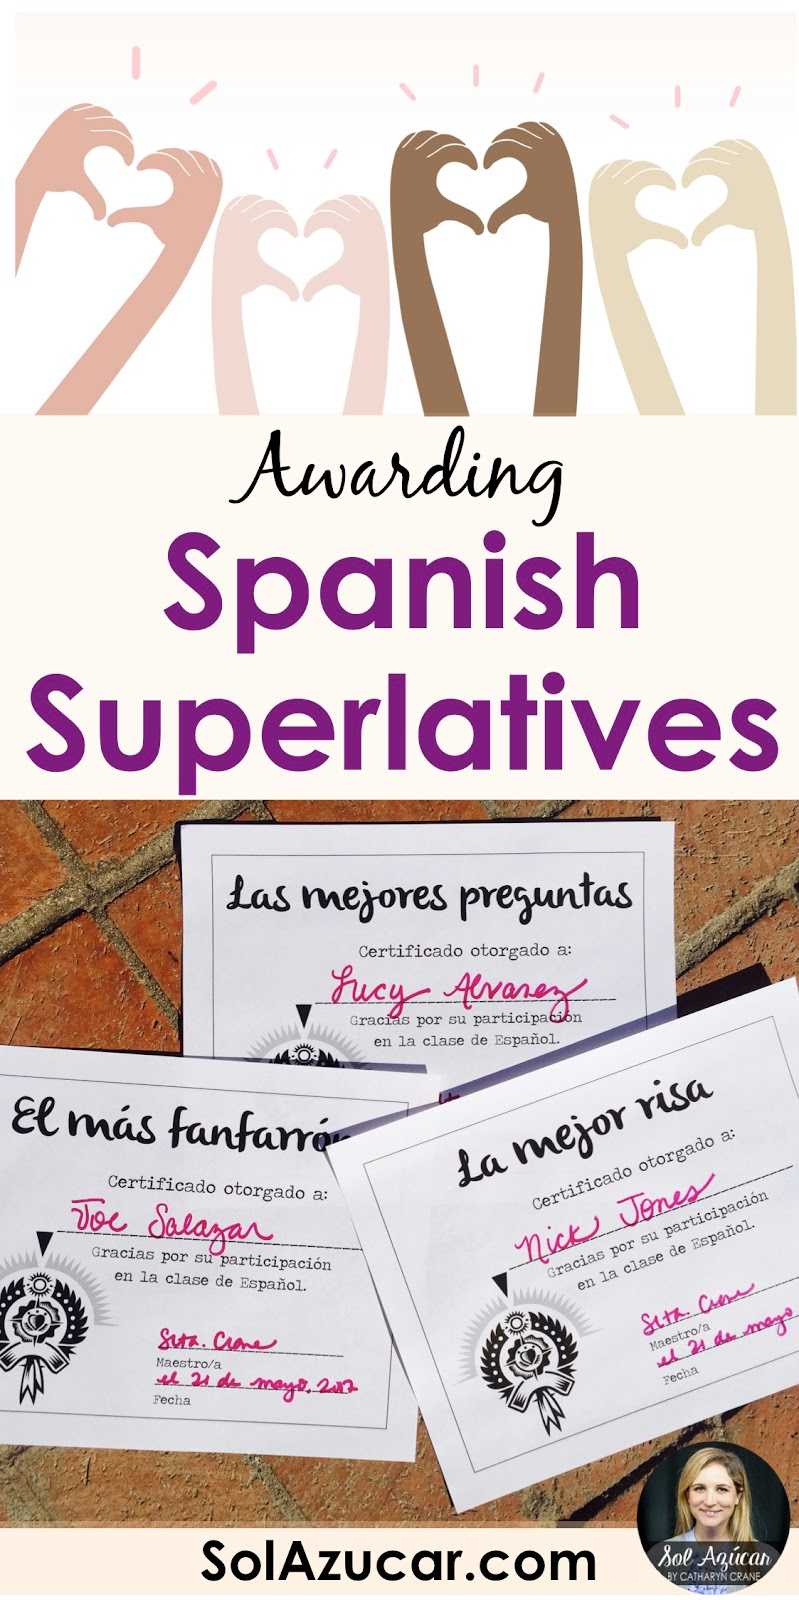 spanish superlatives end of the year student awards sol azúcar by